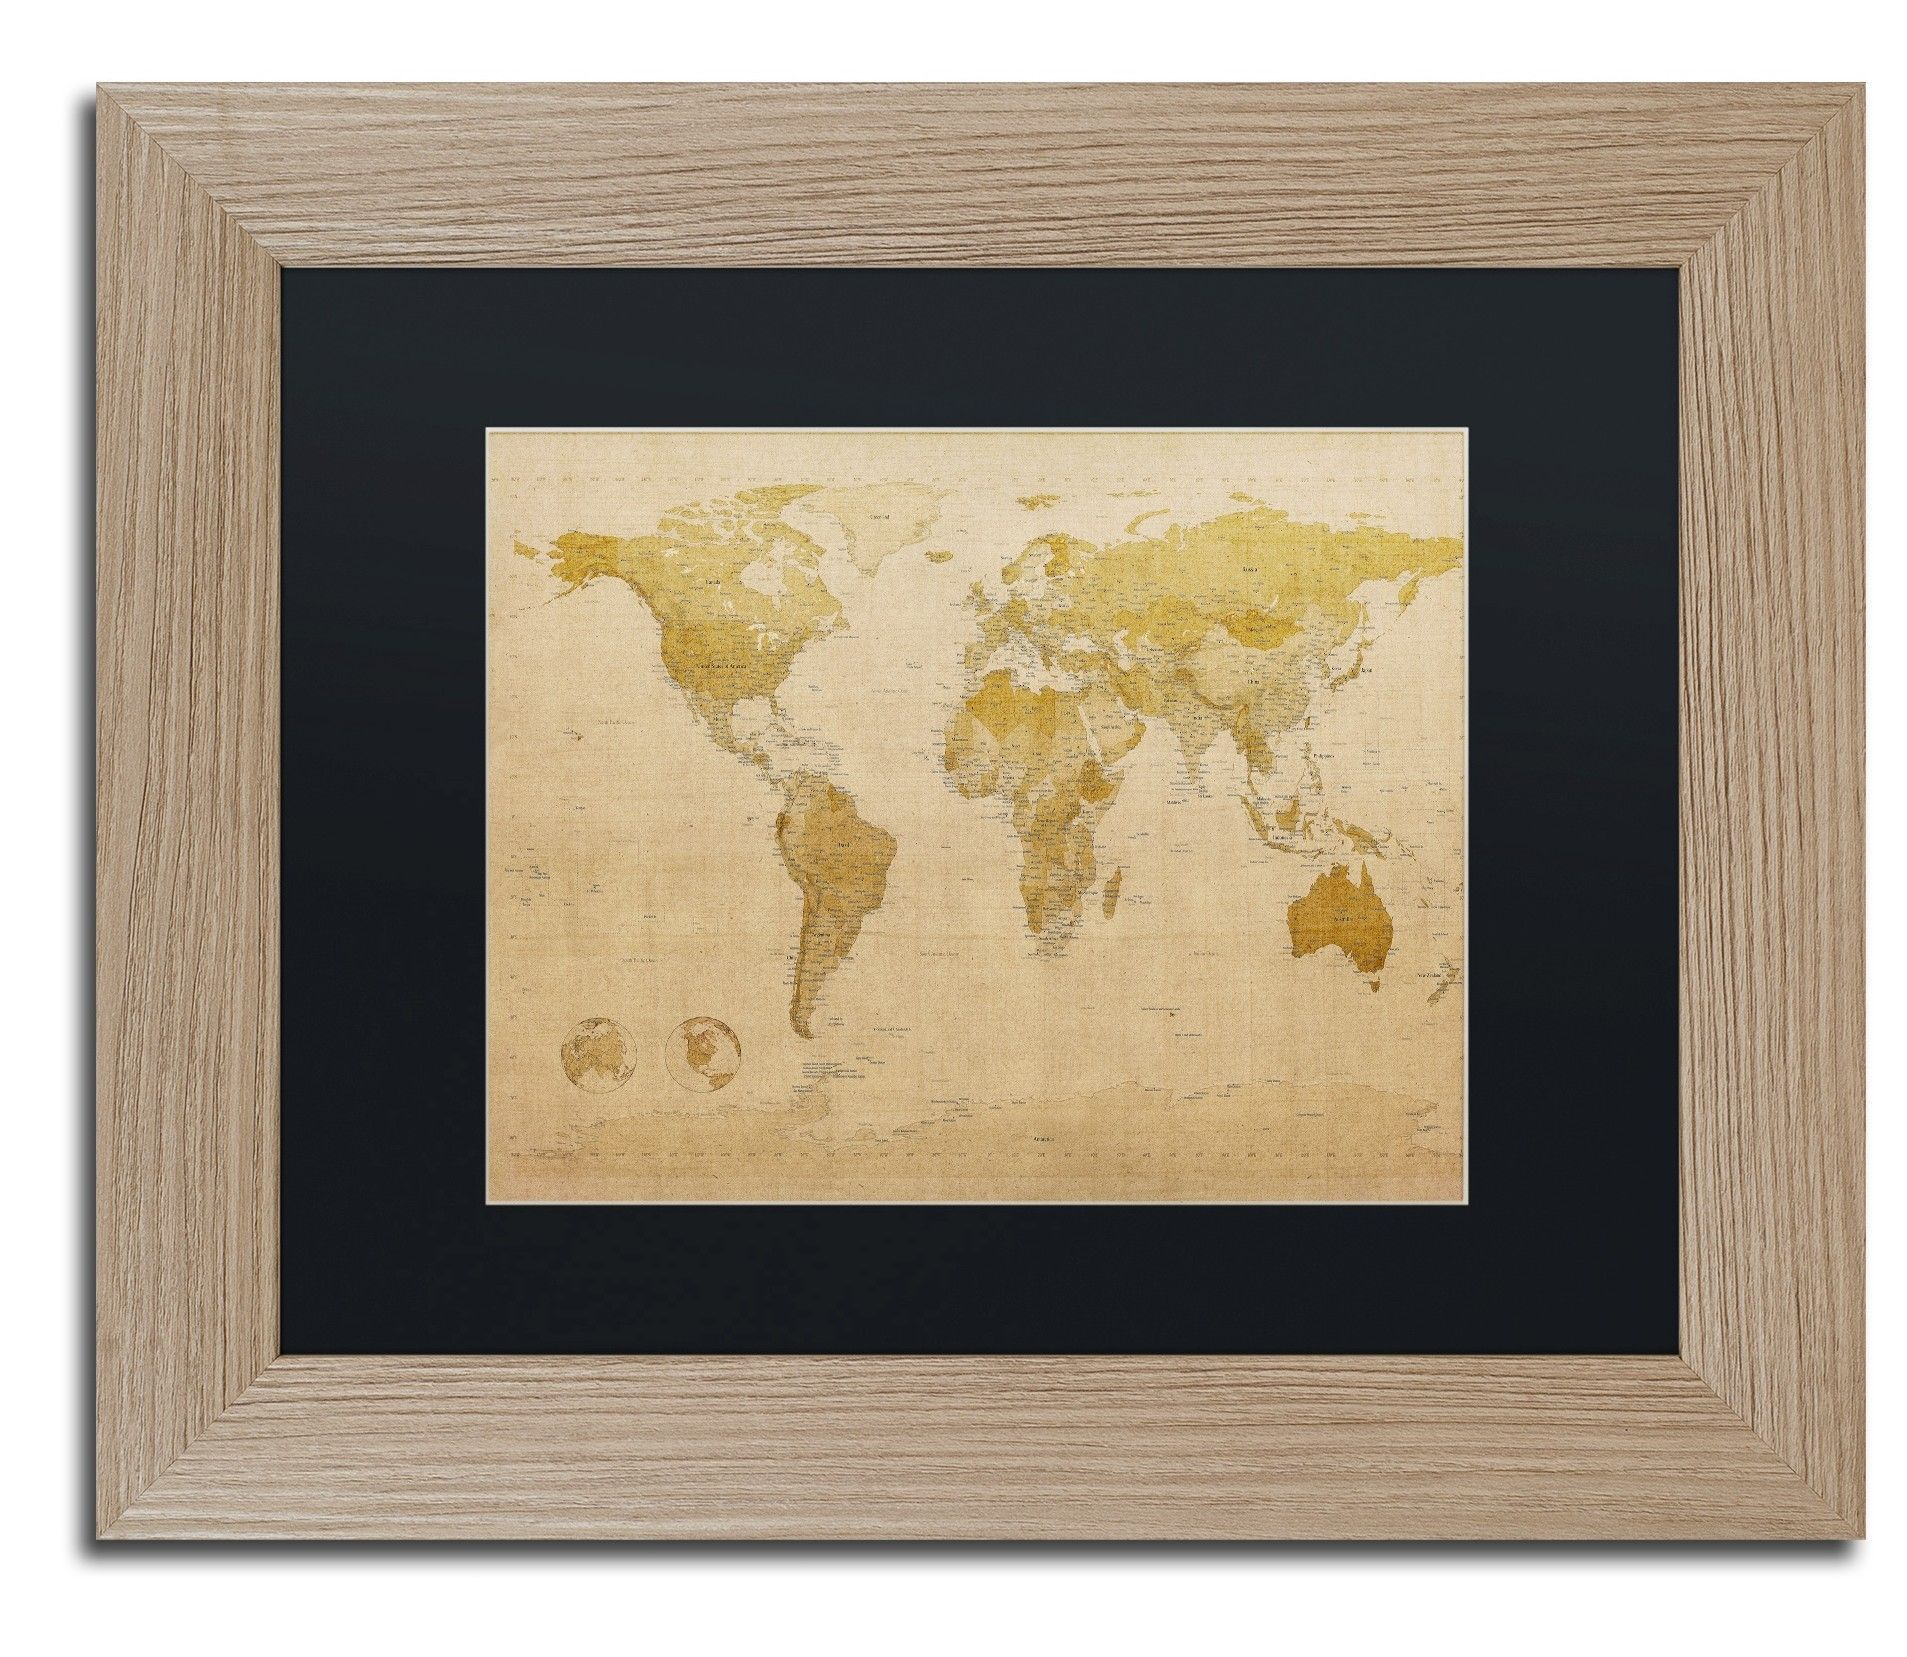 Antique world map by michael tompsett framed graphic art graphic antique world map by michael tompsett framed graphic art publicscrutiny Choice Image